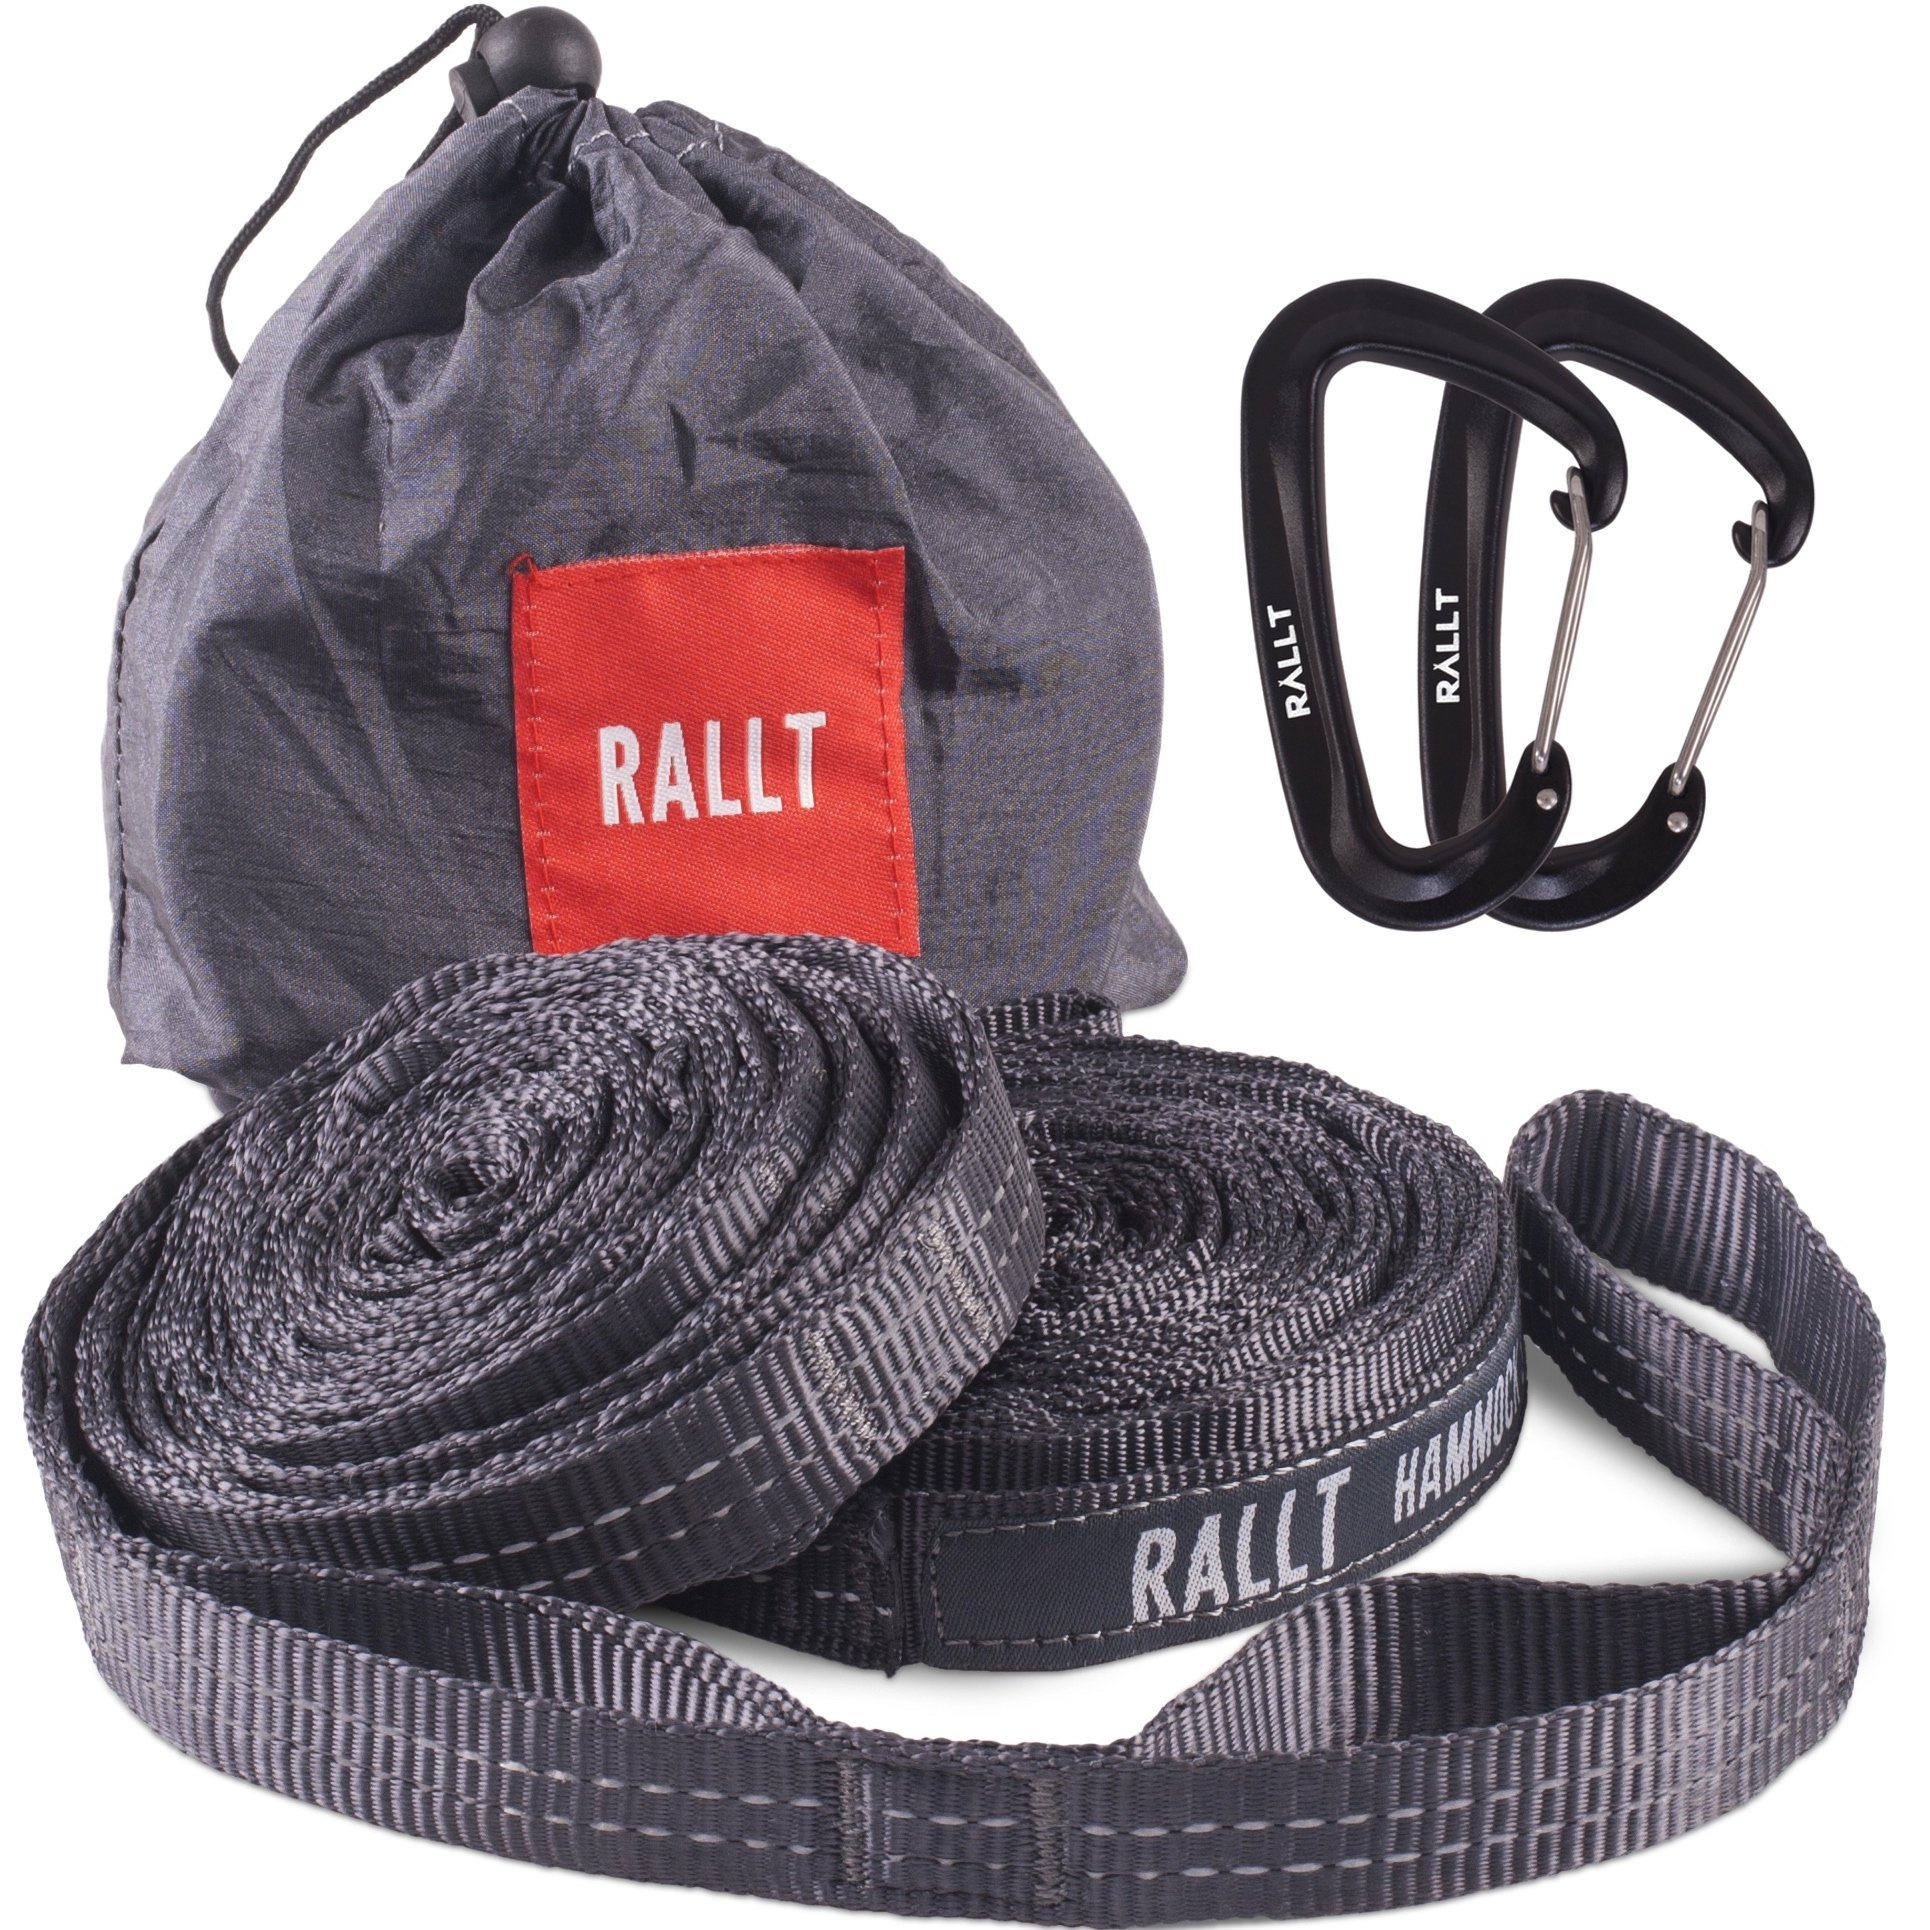 Rallt Hammock Tree Straps - 2000+ LB Breaking Strength, 20 Feet Long, 36 Loops. 2 Carabiners, 100% No Stretch Polyester Adjustable Suspension Straps Like Python and ENO Atlas Straps